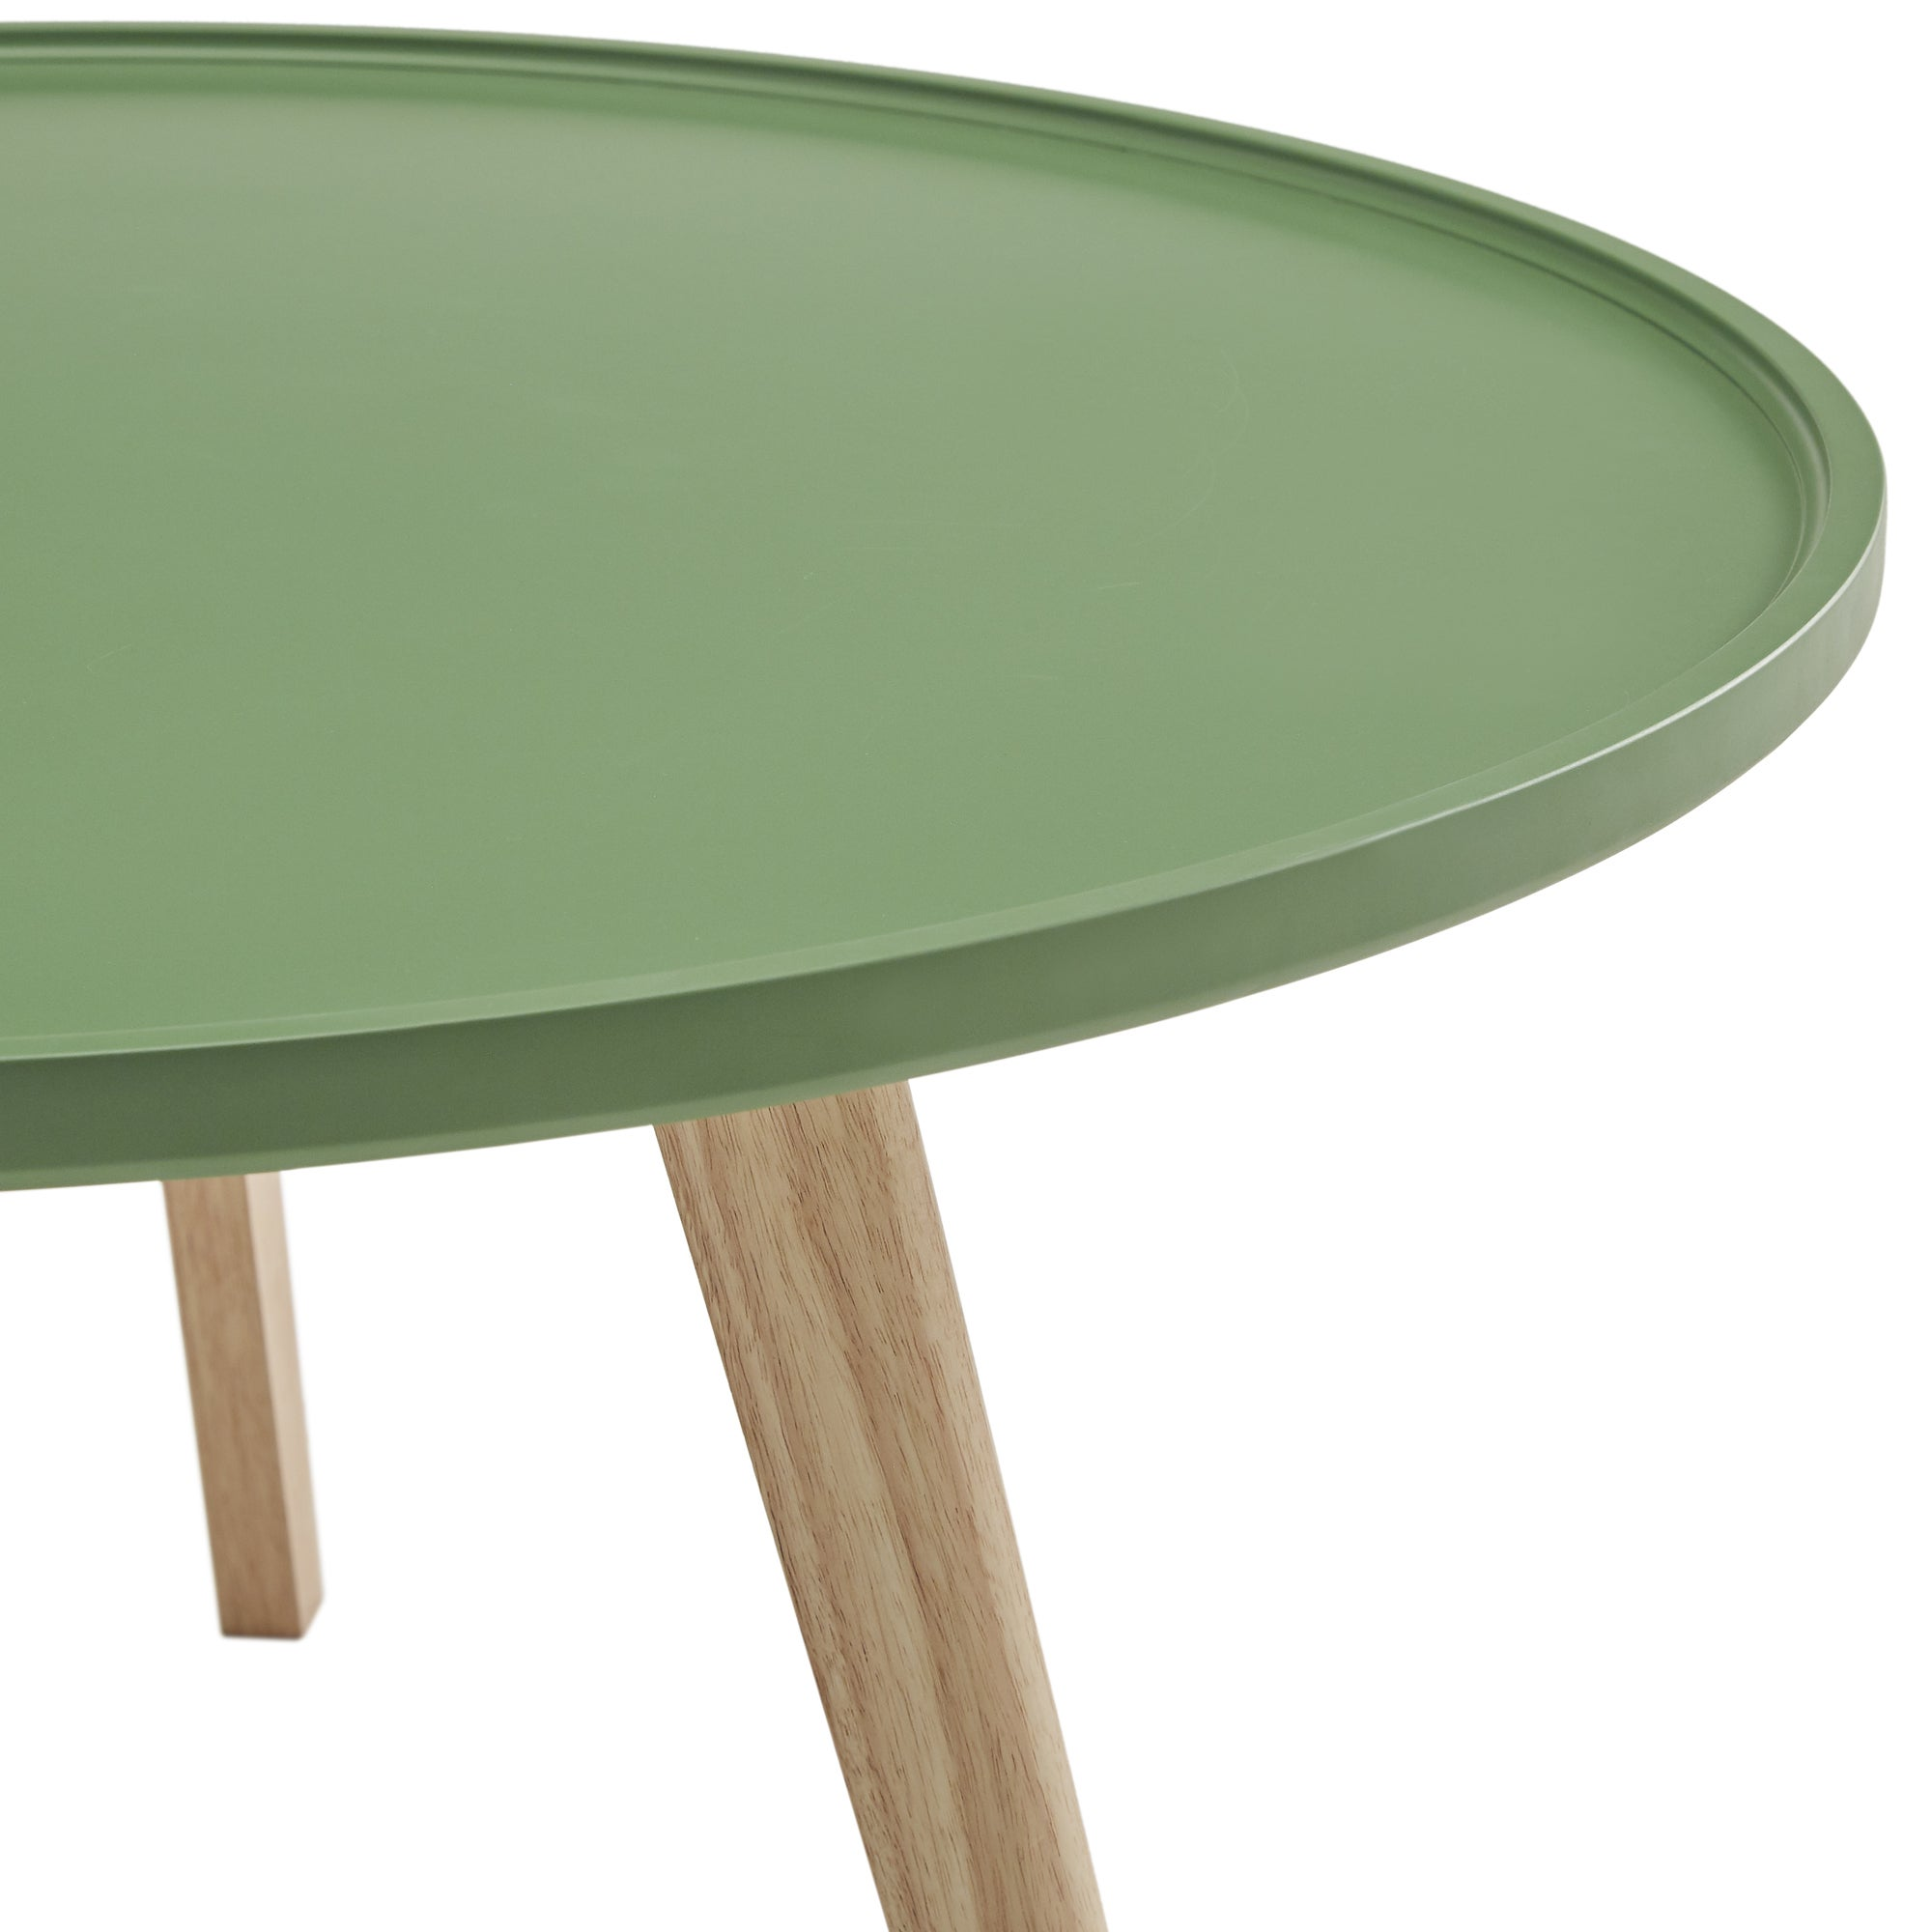 Hayden Mid Century Round Coffee Table By Inspire Q Modern Free Shipping Today 19457142